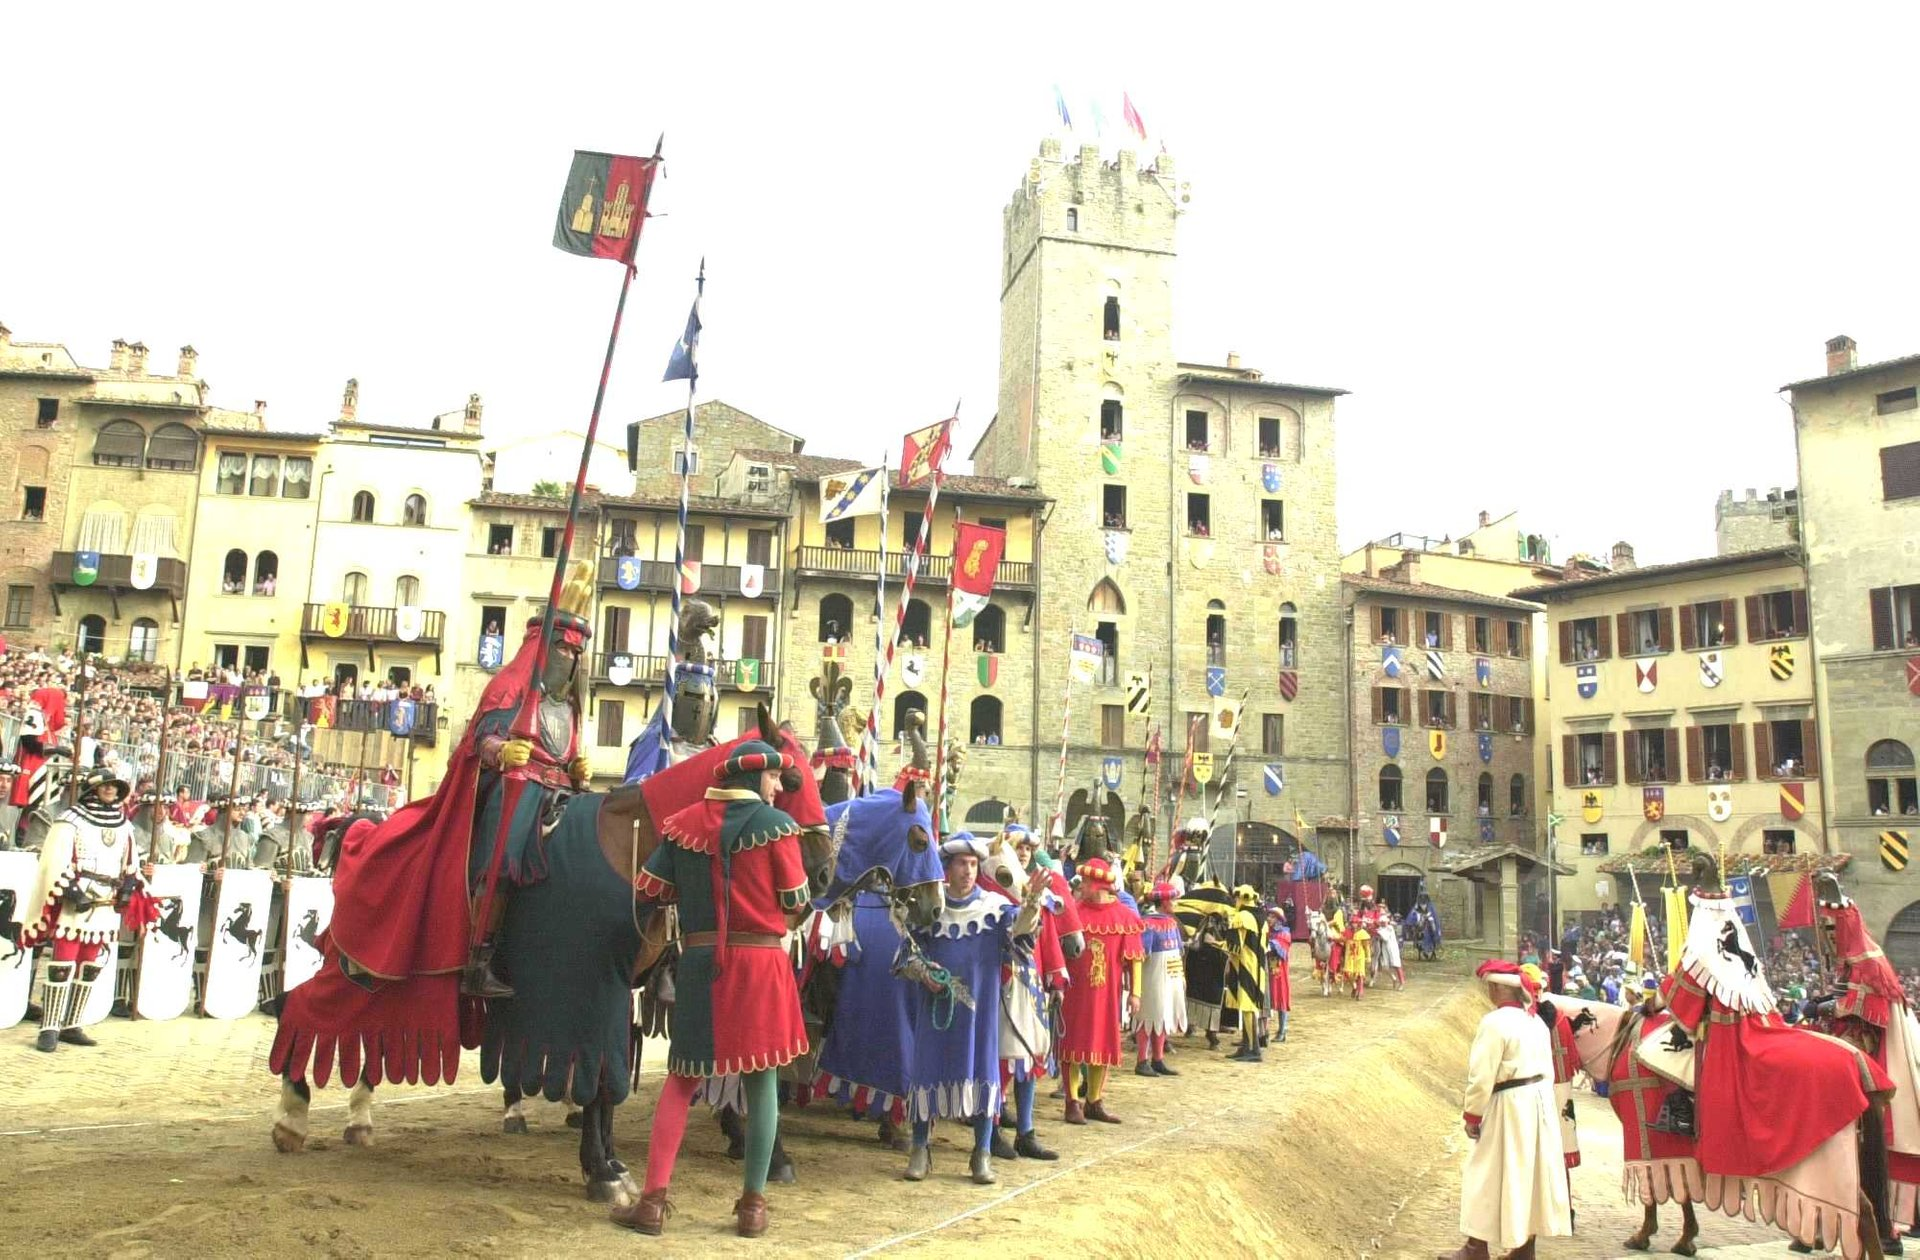 Best time for Giostra del Saracino (Joust of the Saracens) 2020